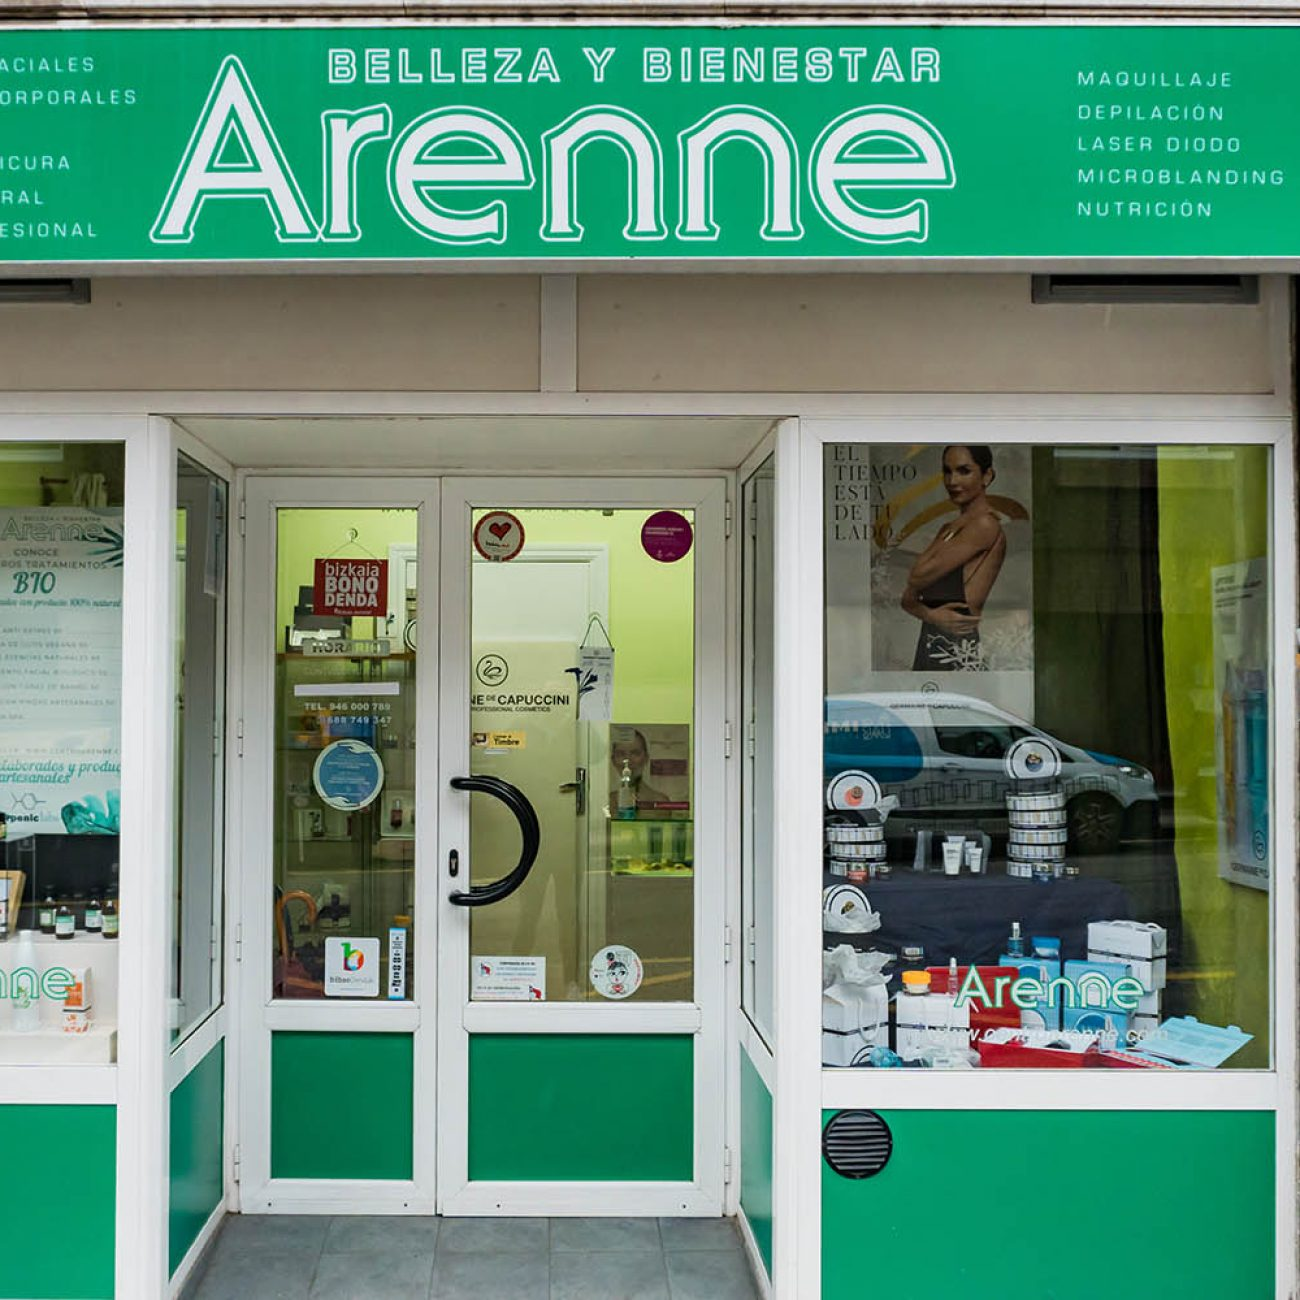 ARENNE